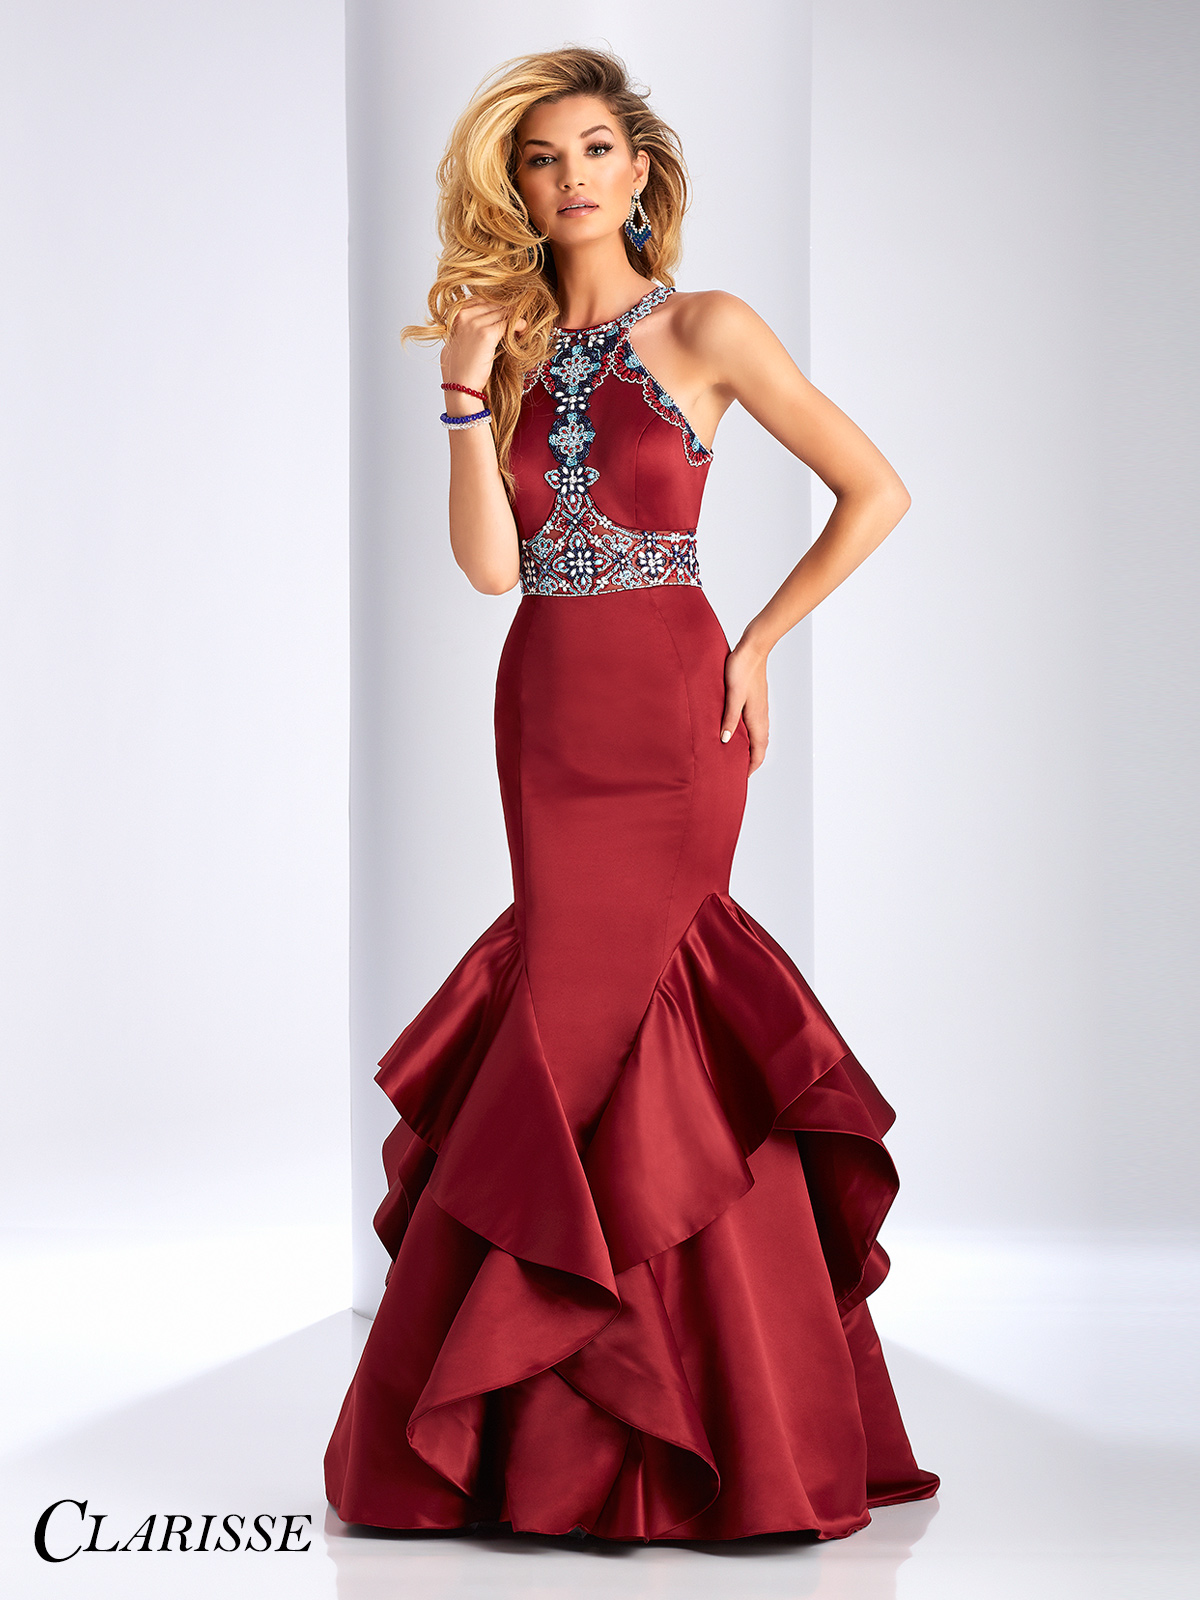 Clarisse Prom Dress 3058 | Promgirl.net